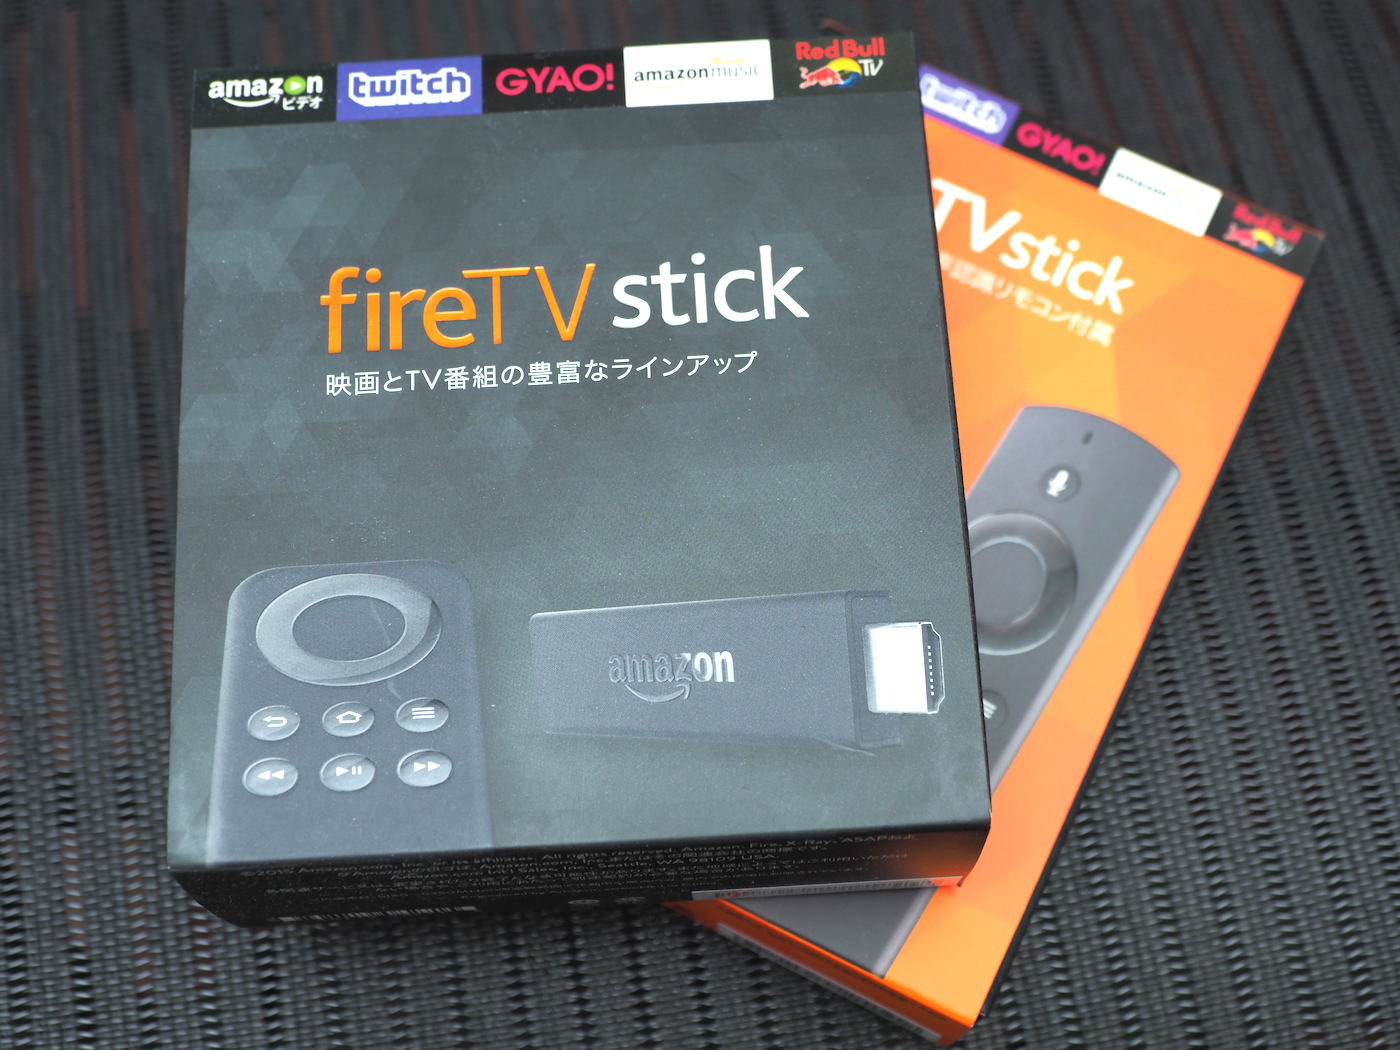 Amazon fire tv stick new model 00001